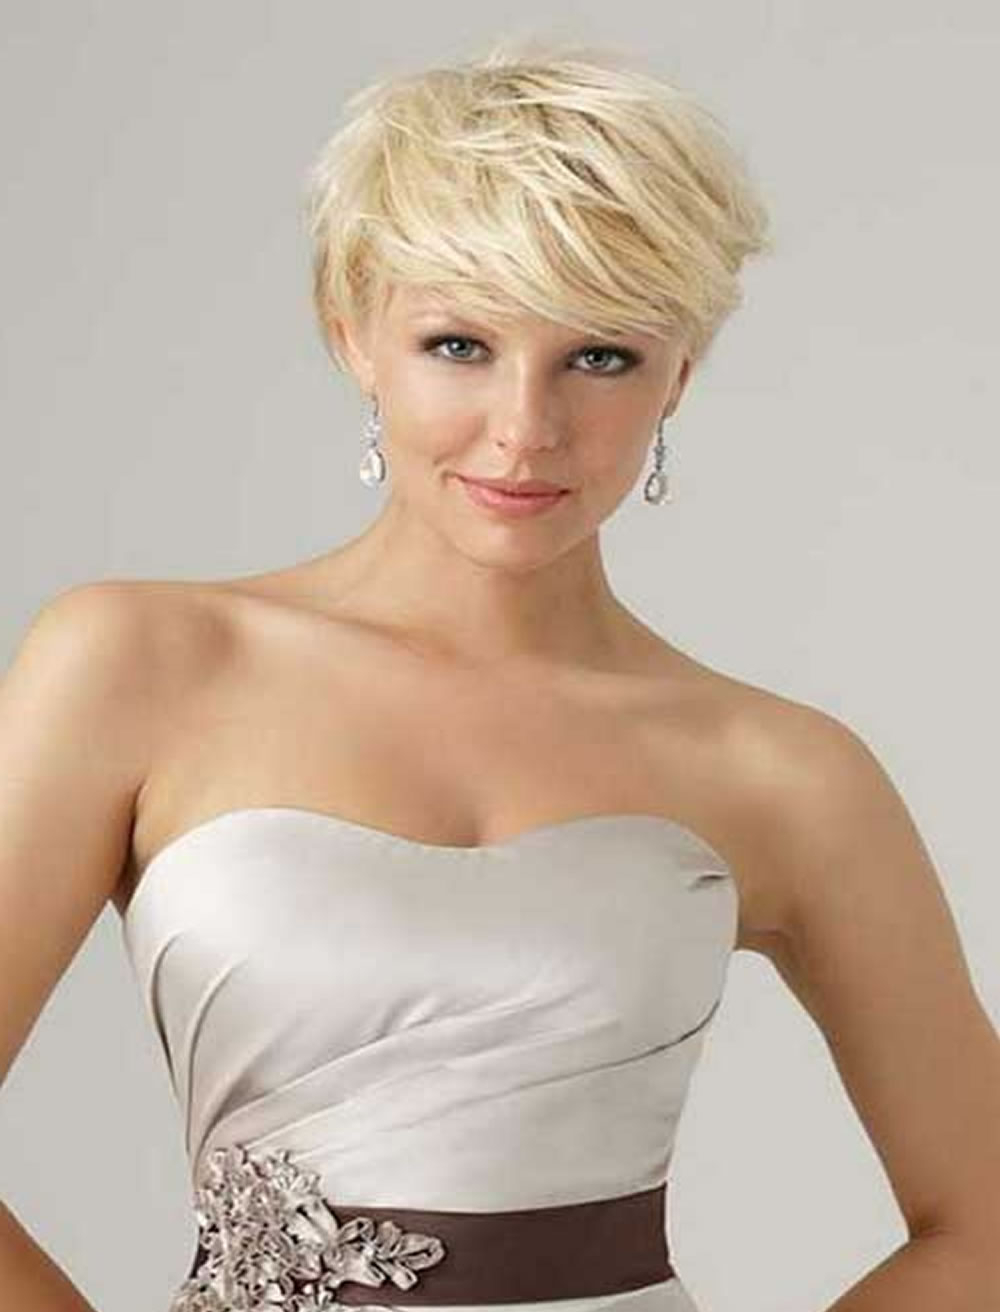 Trend Pixie Haircuts For Thick Hair 2018 2019 : 28 Terrific Pixie Pertaining To Pixie Haircuts With Short Thick Hair (View 8 of 20)